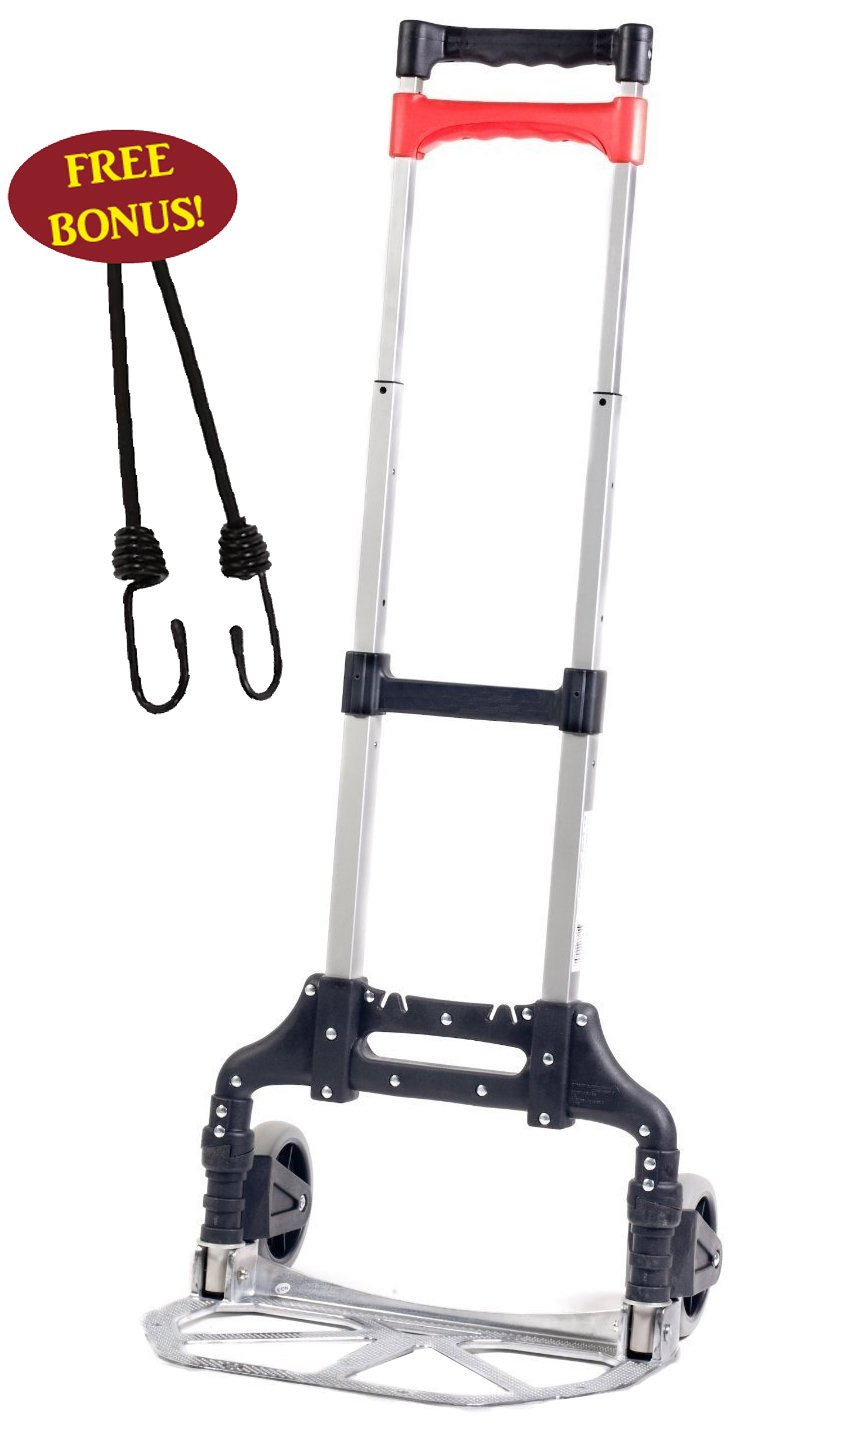 Bovado USA BOV-16636 Hand Truck, Folding Aluminum Cart, Movers Dolly for Moving Needs by Bovado USA